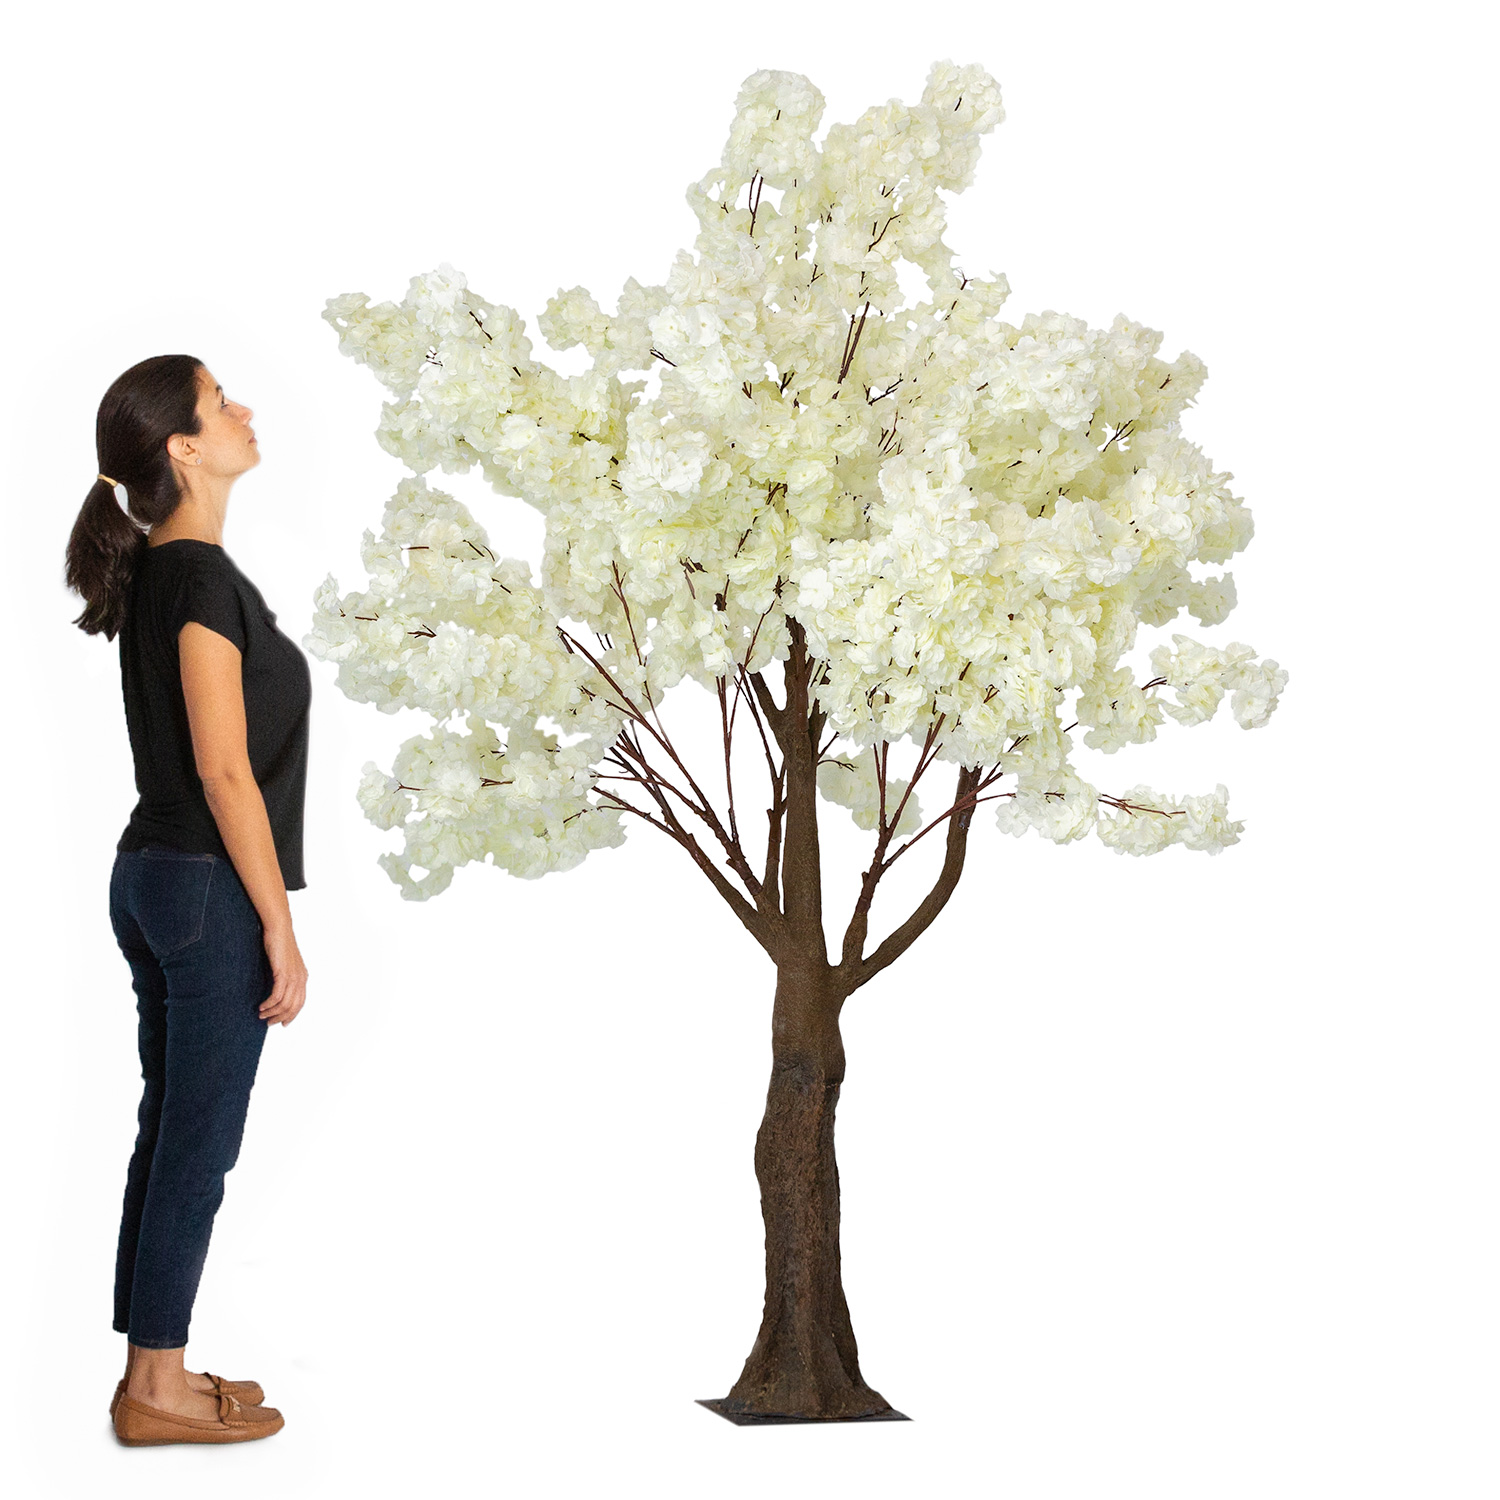 6 5ft Tall Fake Hydrangea Bloom Tree 10 Interchangeable Branches White